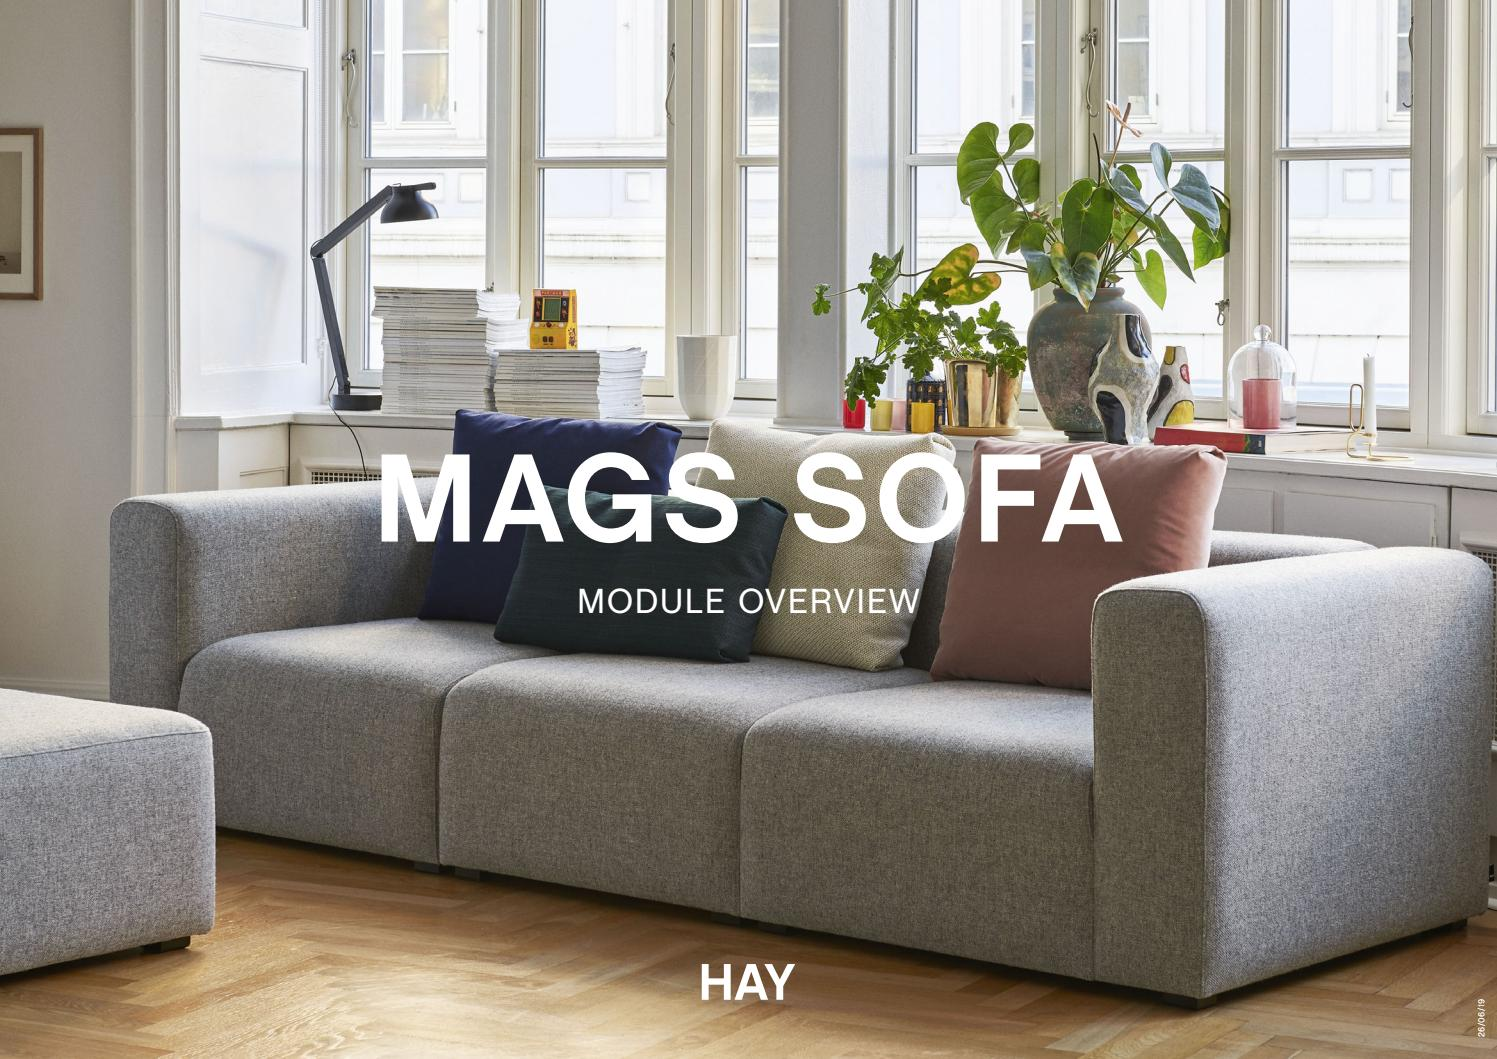 Hay Mags Sofa Module Overview By